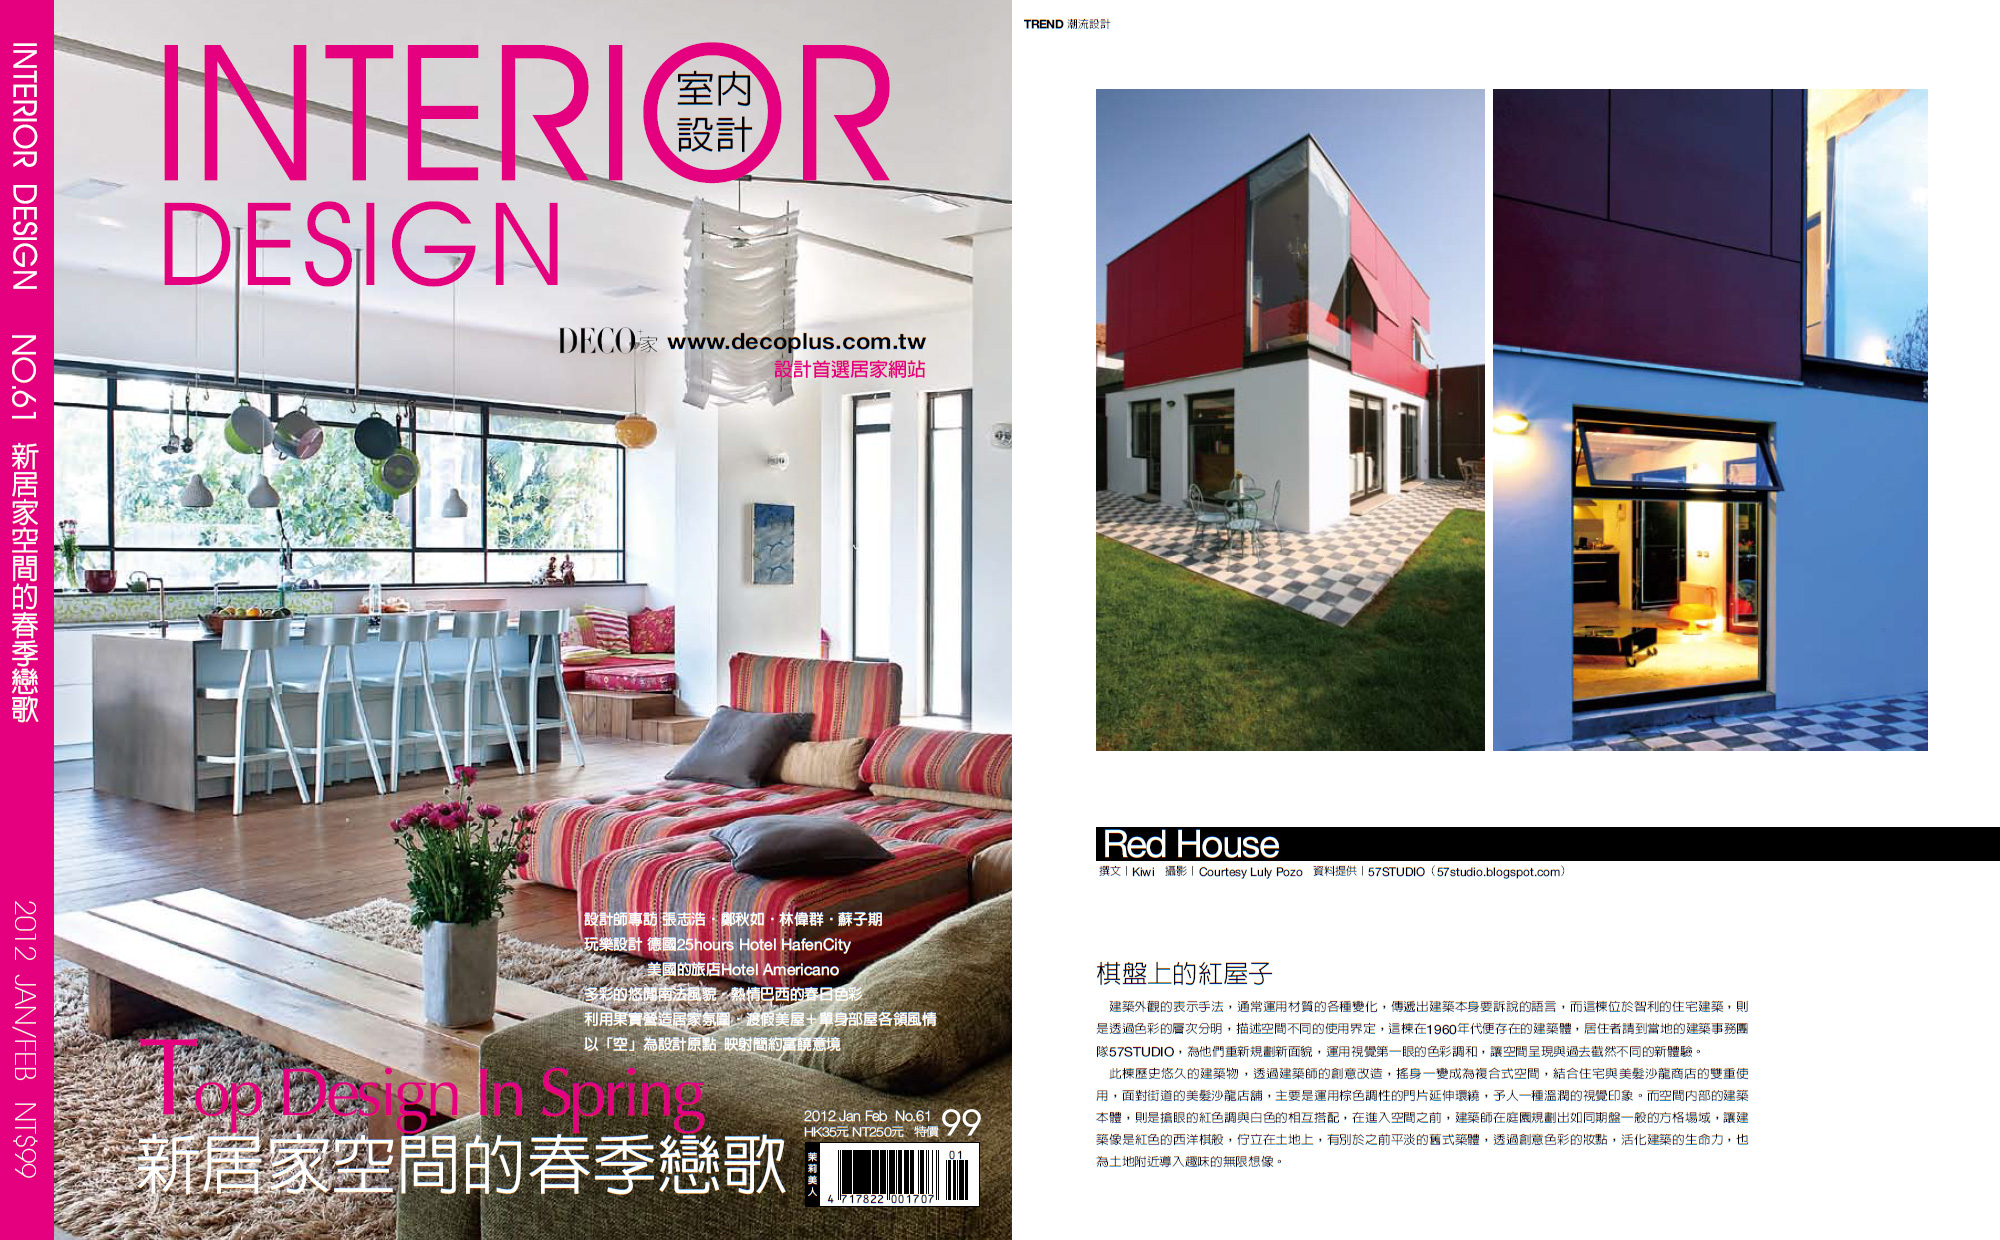 Photo: Interior Design Magazine / #61 / Taiwan / 2012